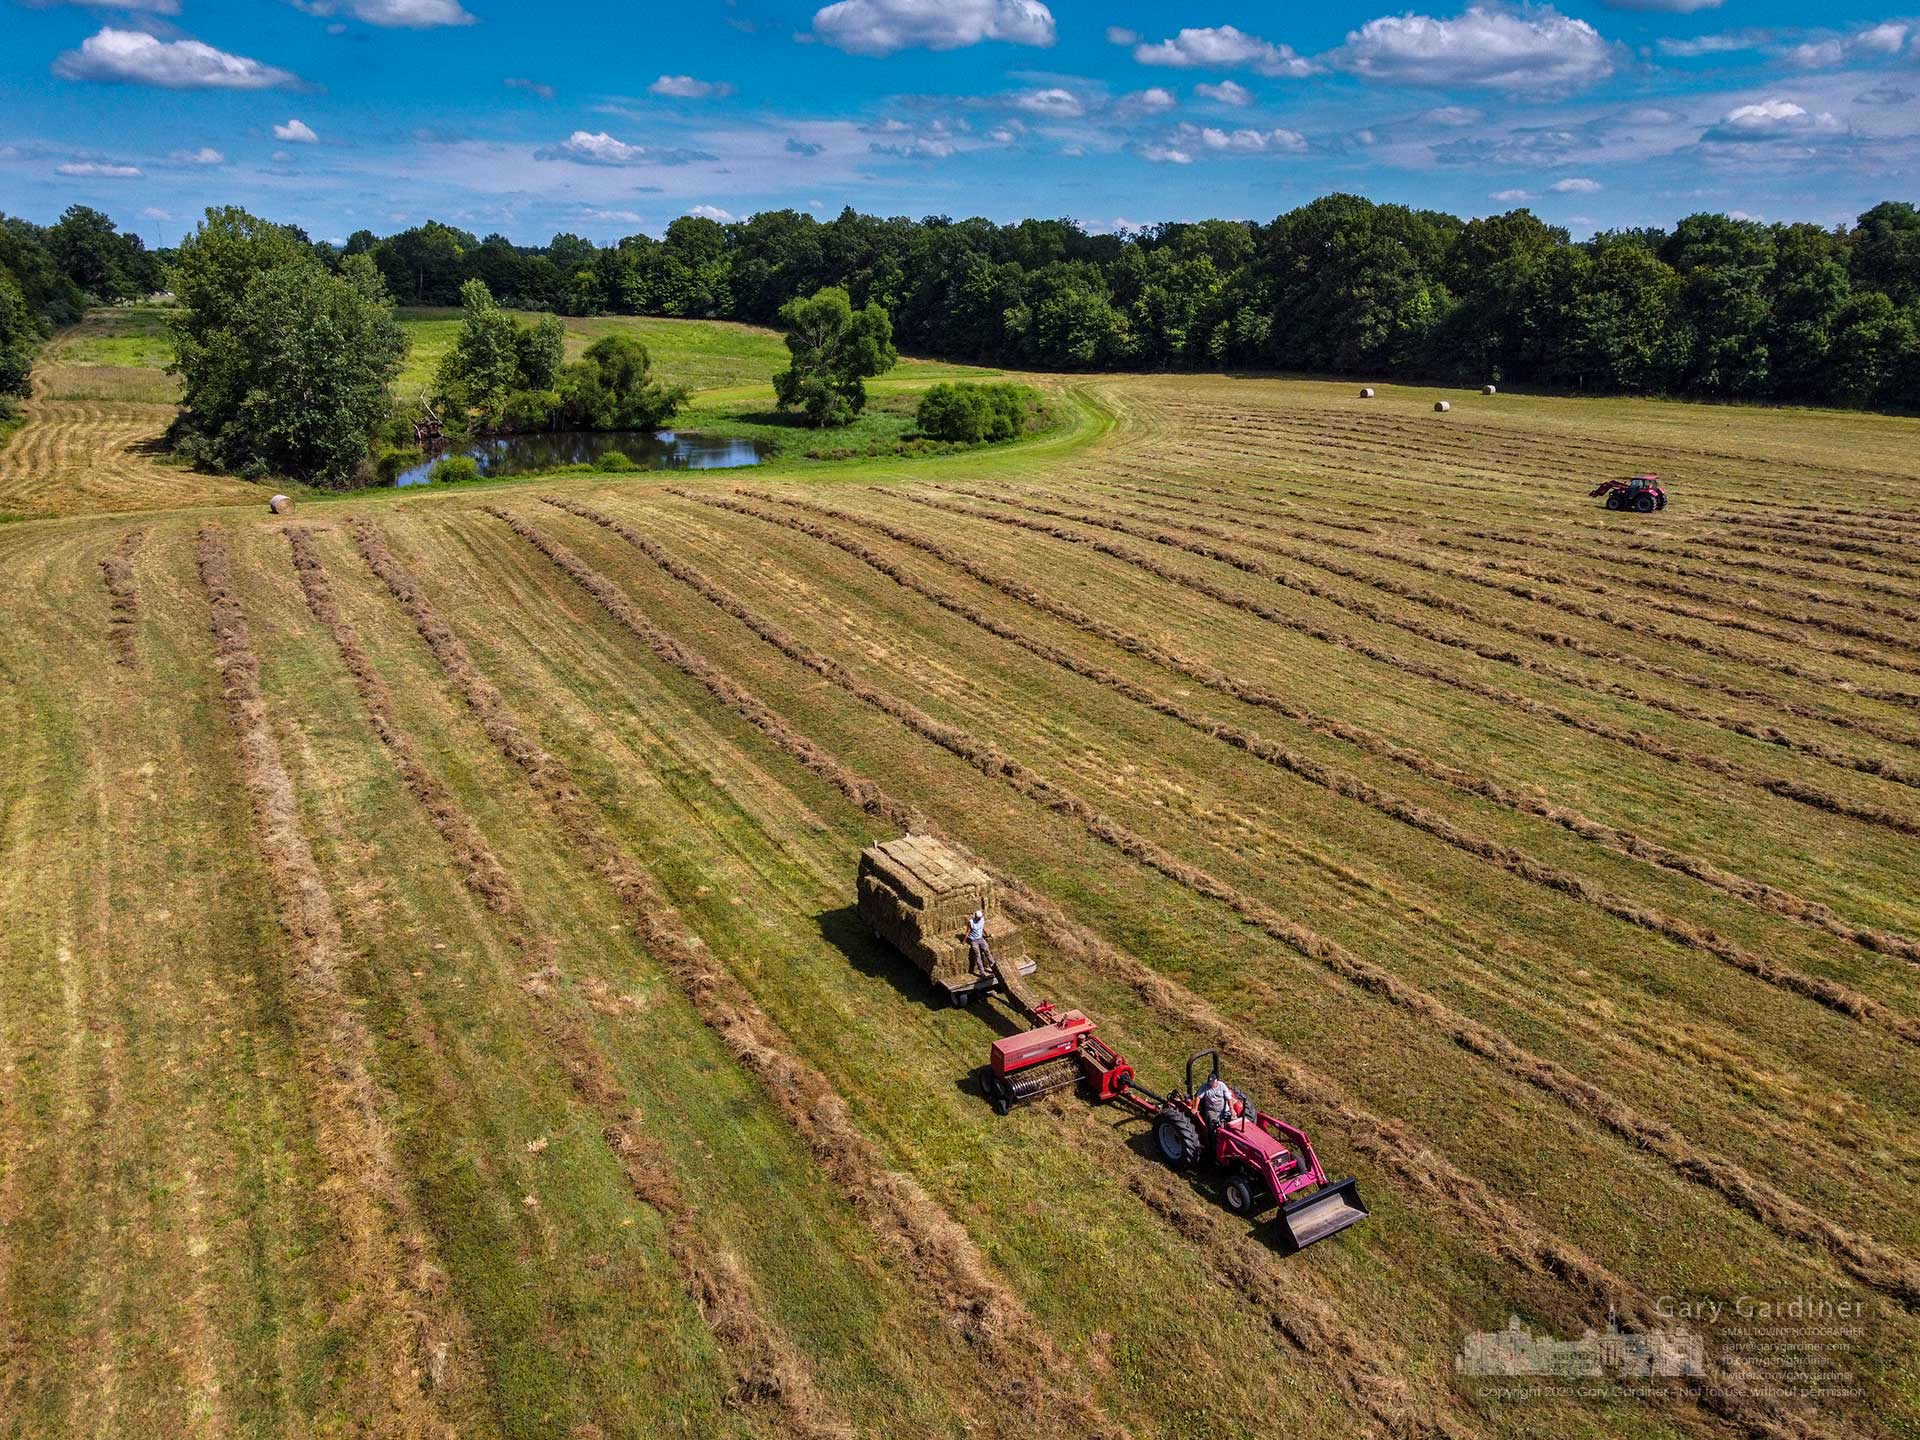 Kevin Scott and his crew bale hay on the farmland around the historic Sharp Family Home on Africa Road. My Final Photo for July 31, 2020.